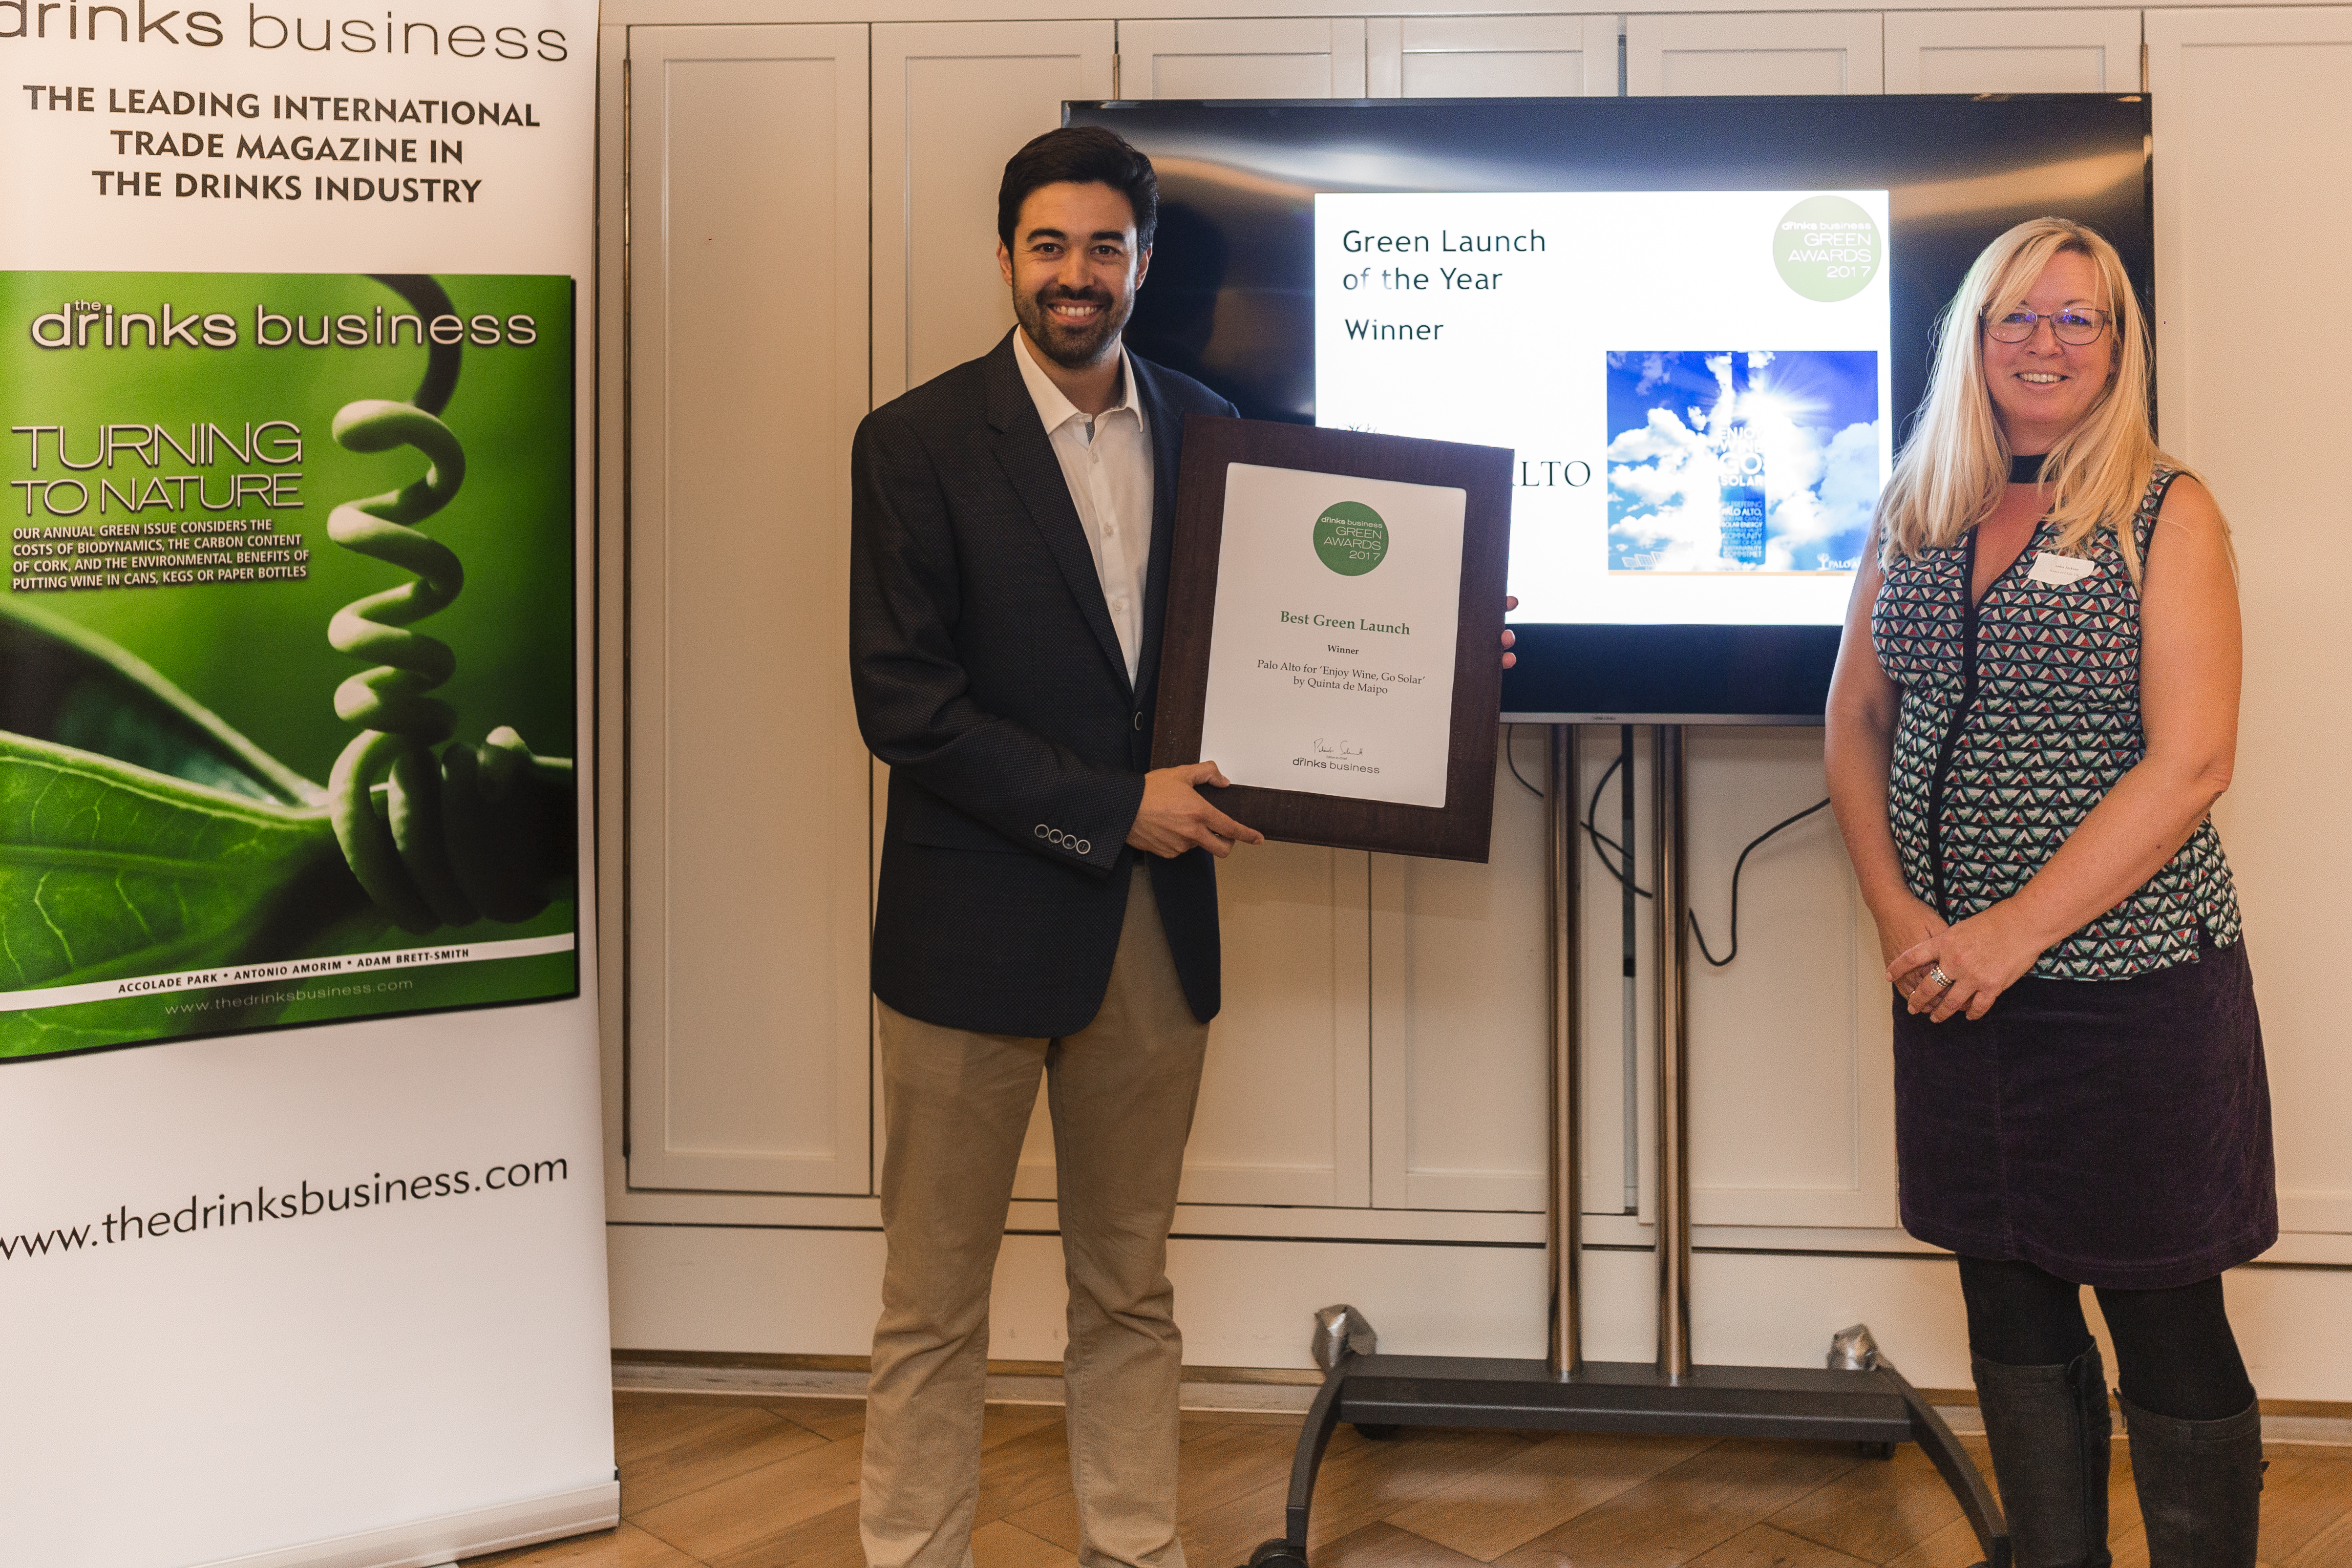 "Palo Alto is Awarded ""Best Green Launch of the Year"" By the Drinks Business"